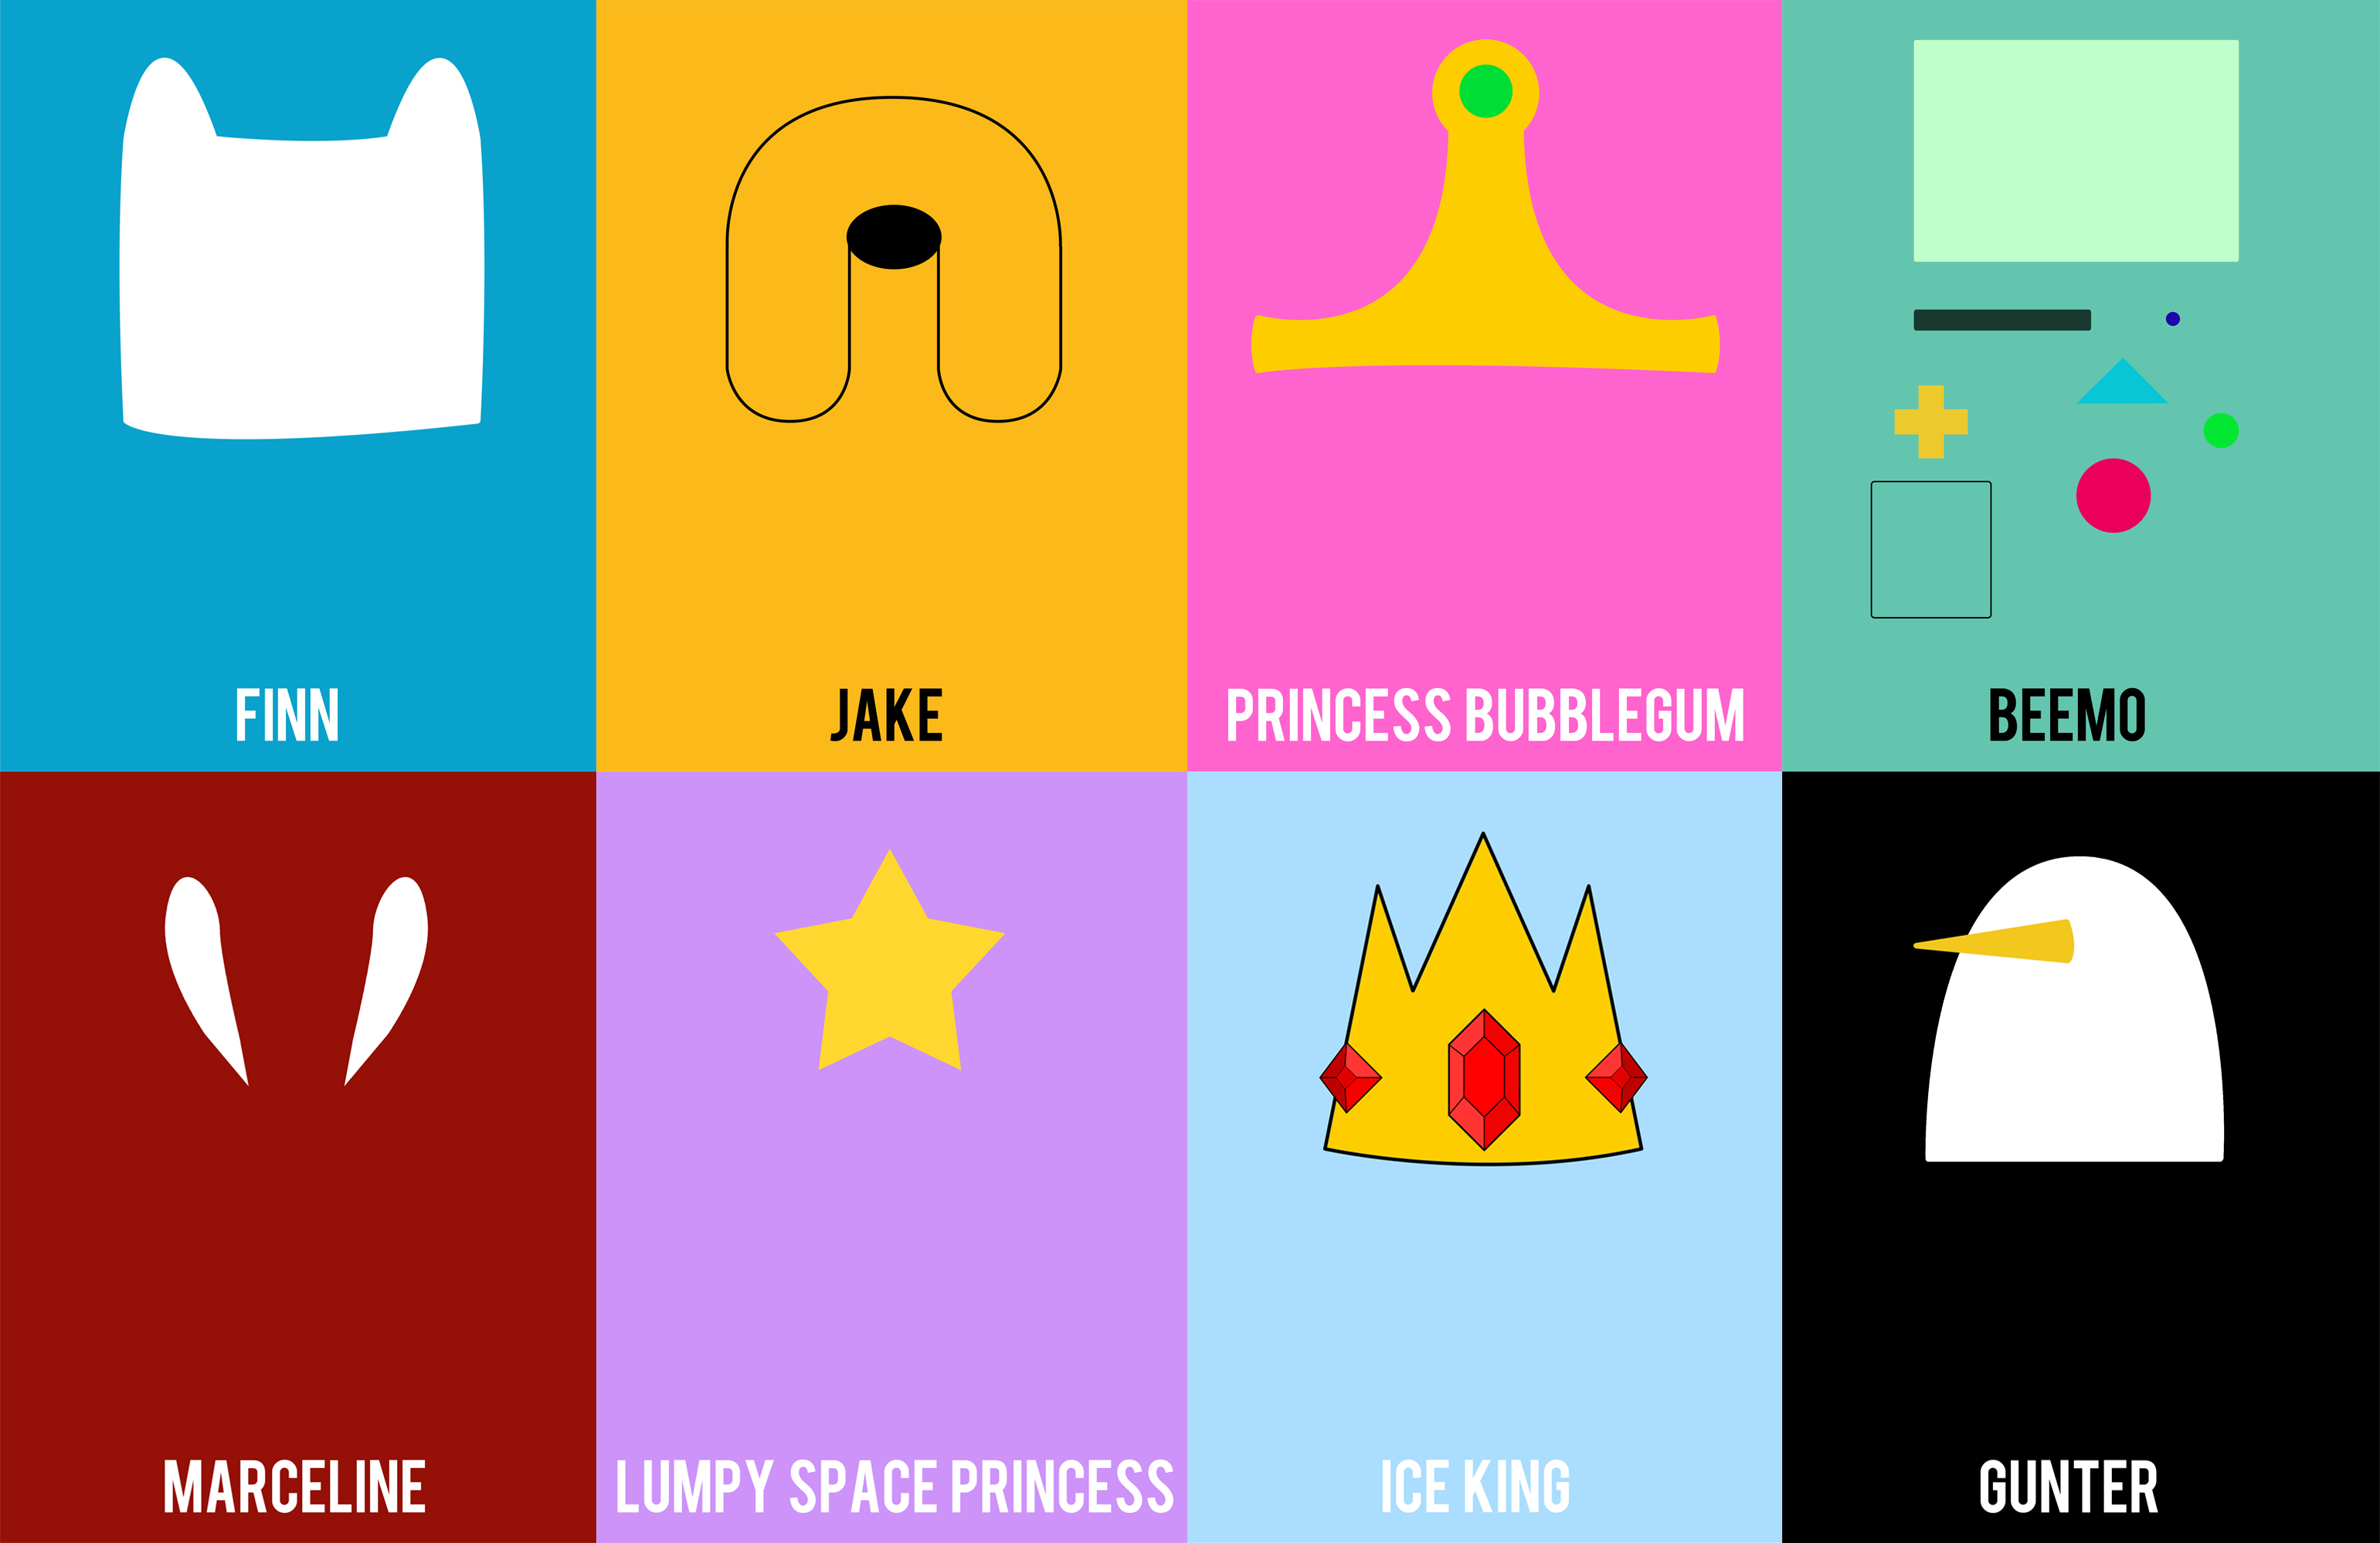 Wallpaper iphone adventure time - Adventure Time Minimalistic By Thegonff Adventure Time Minimalistic By Thegonff